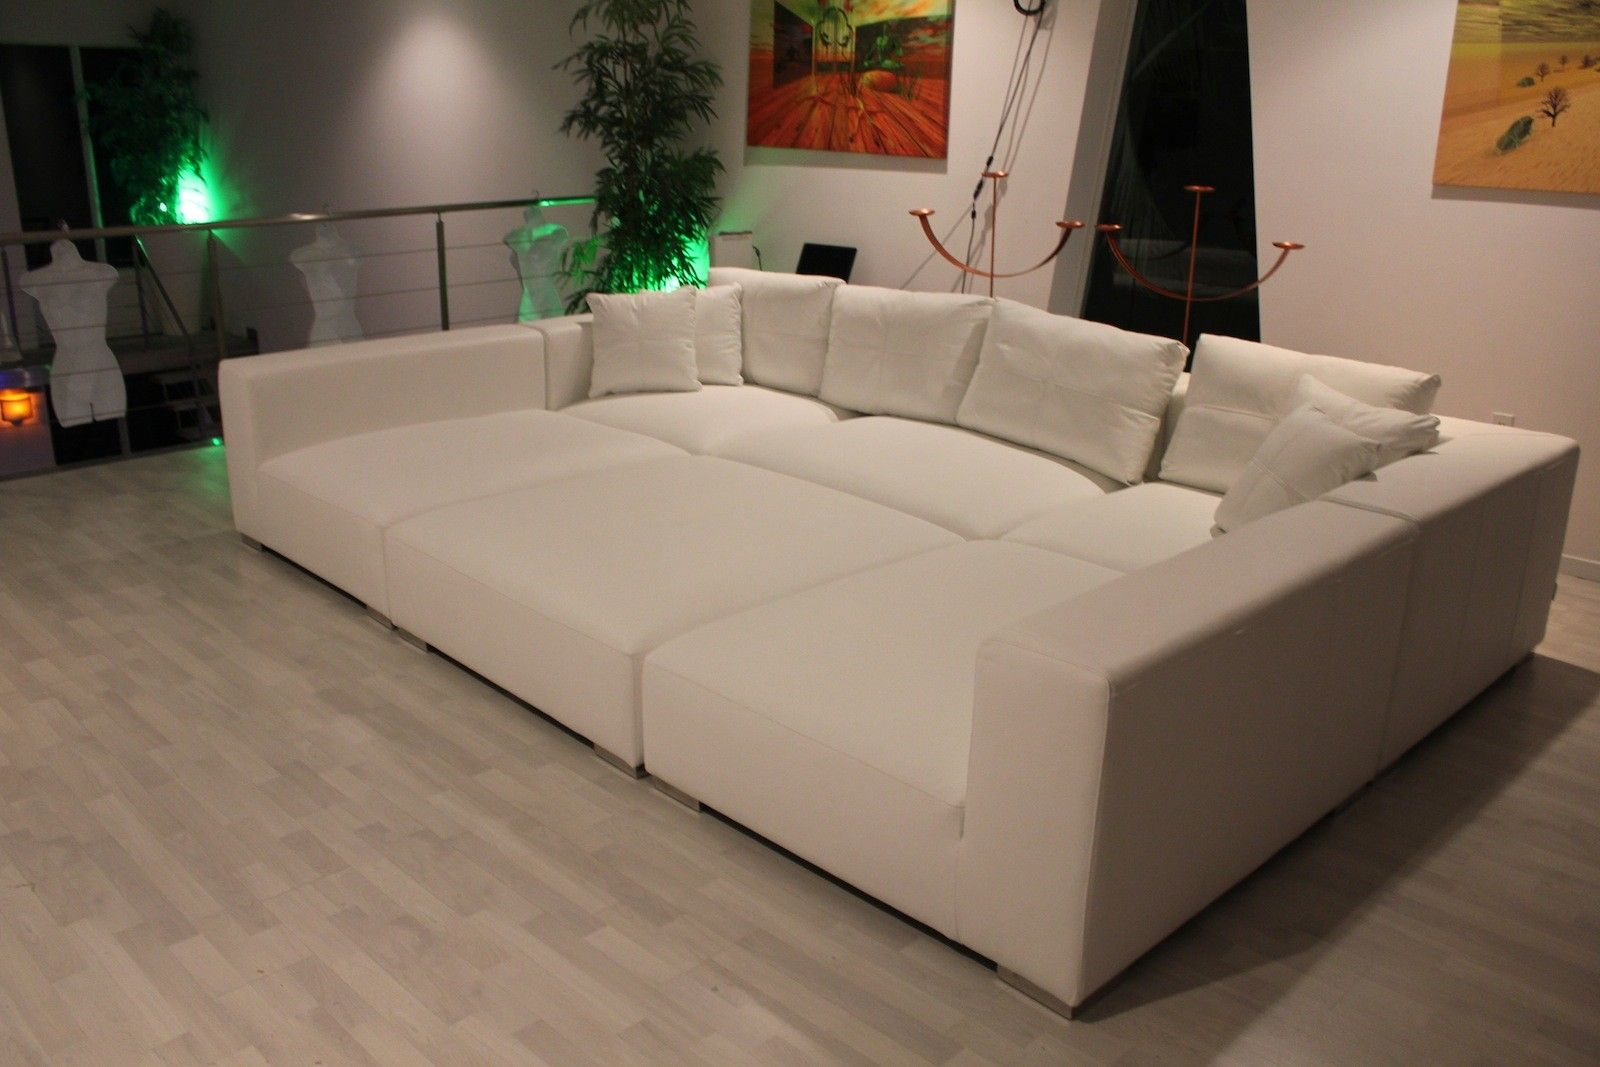 Sofa Pit It Looks So Comfy D